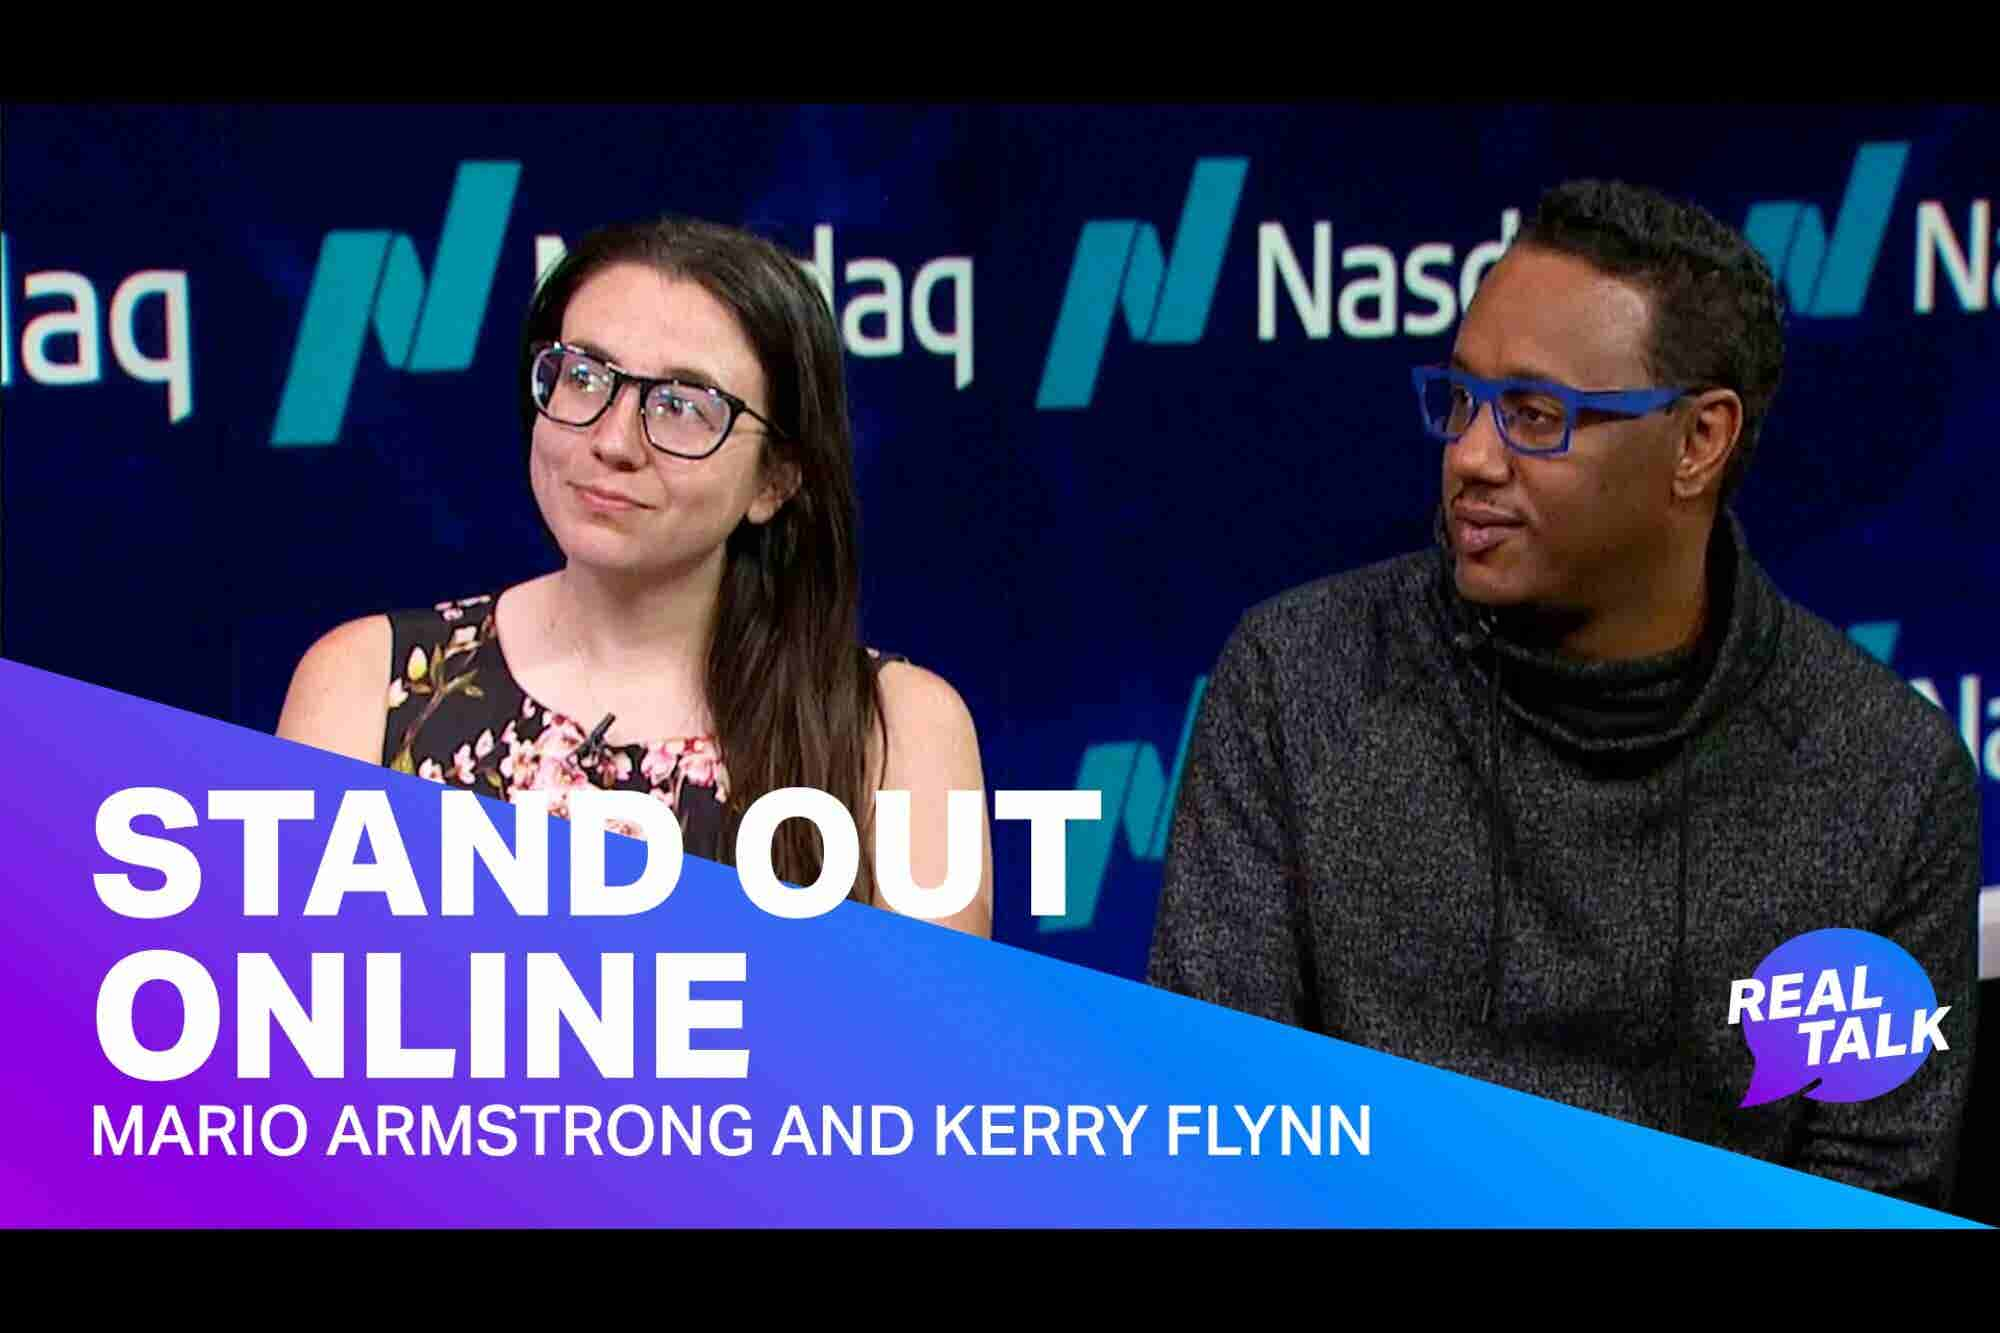 How to Stand Out Online and Rise Above the Digital Noise